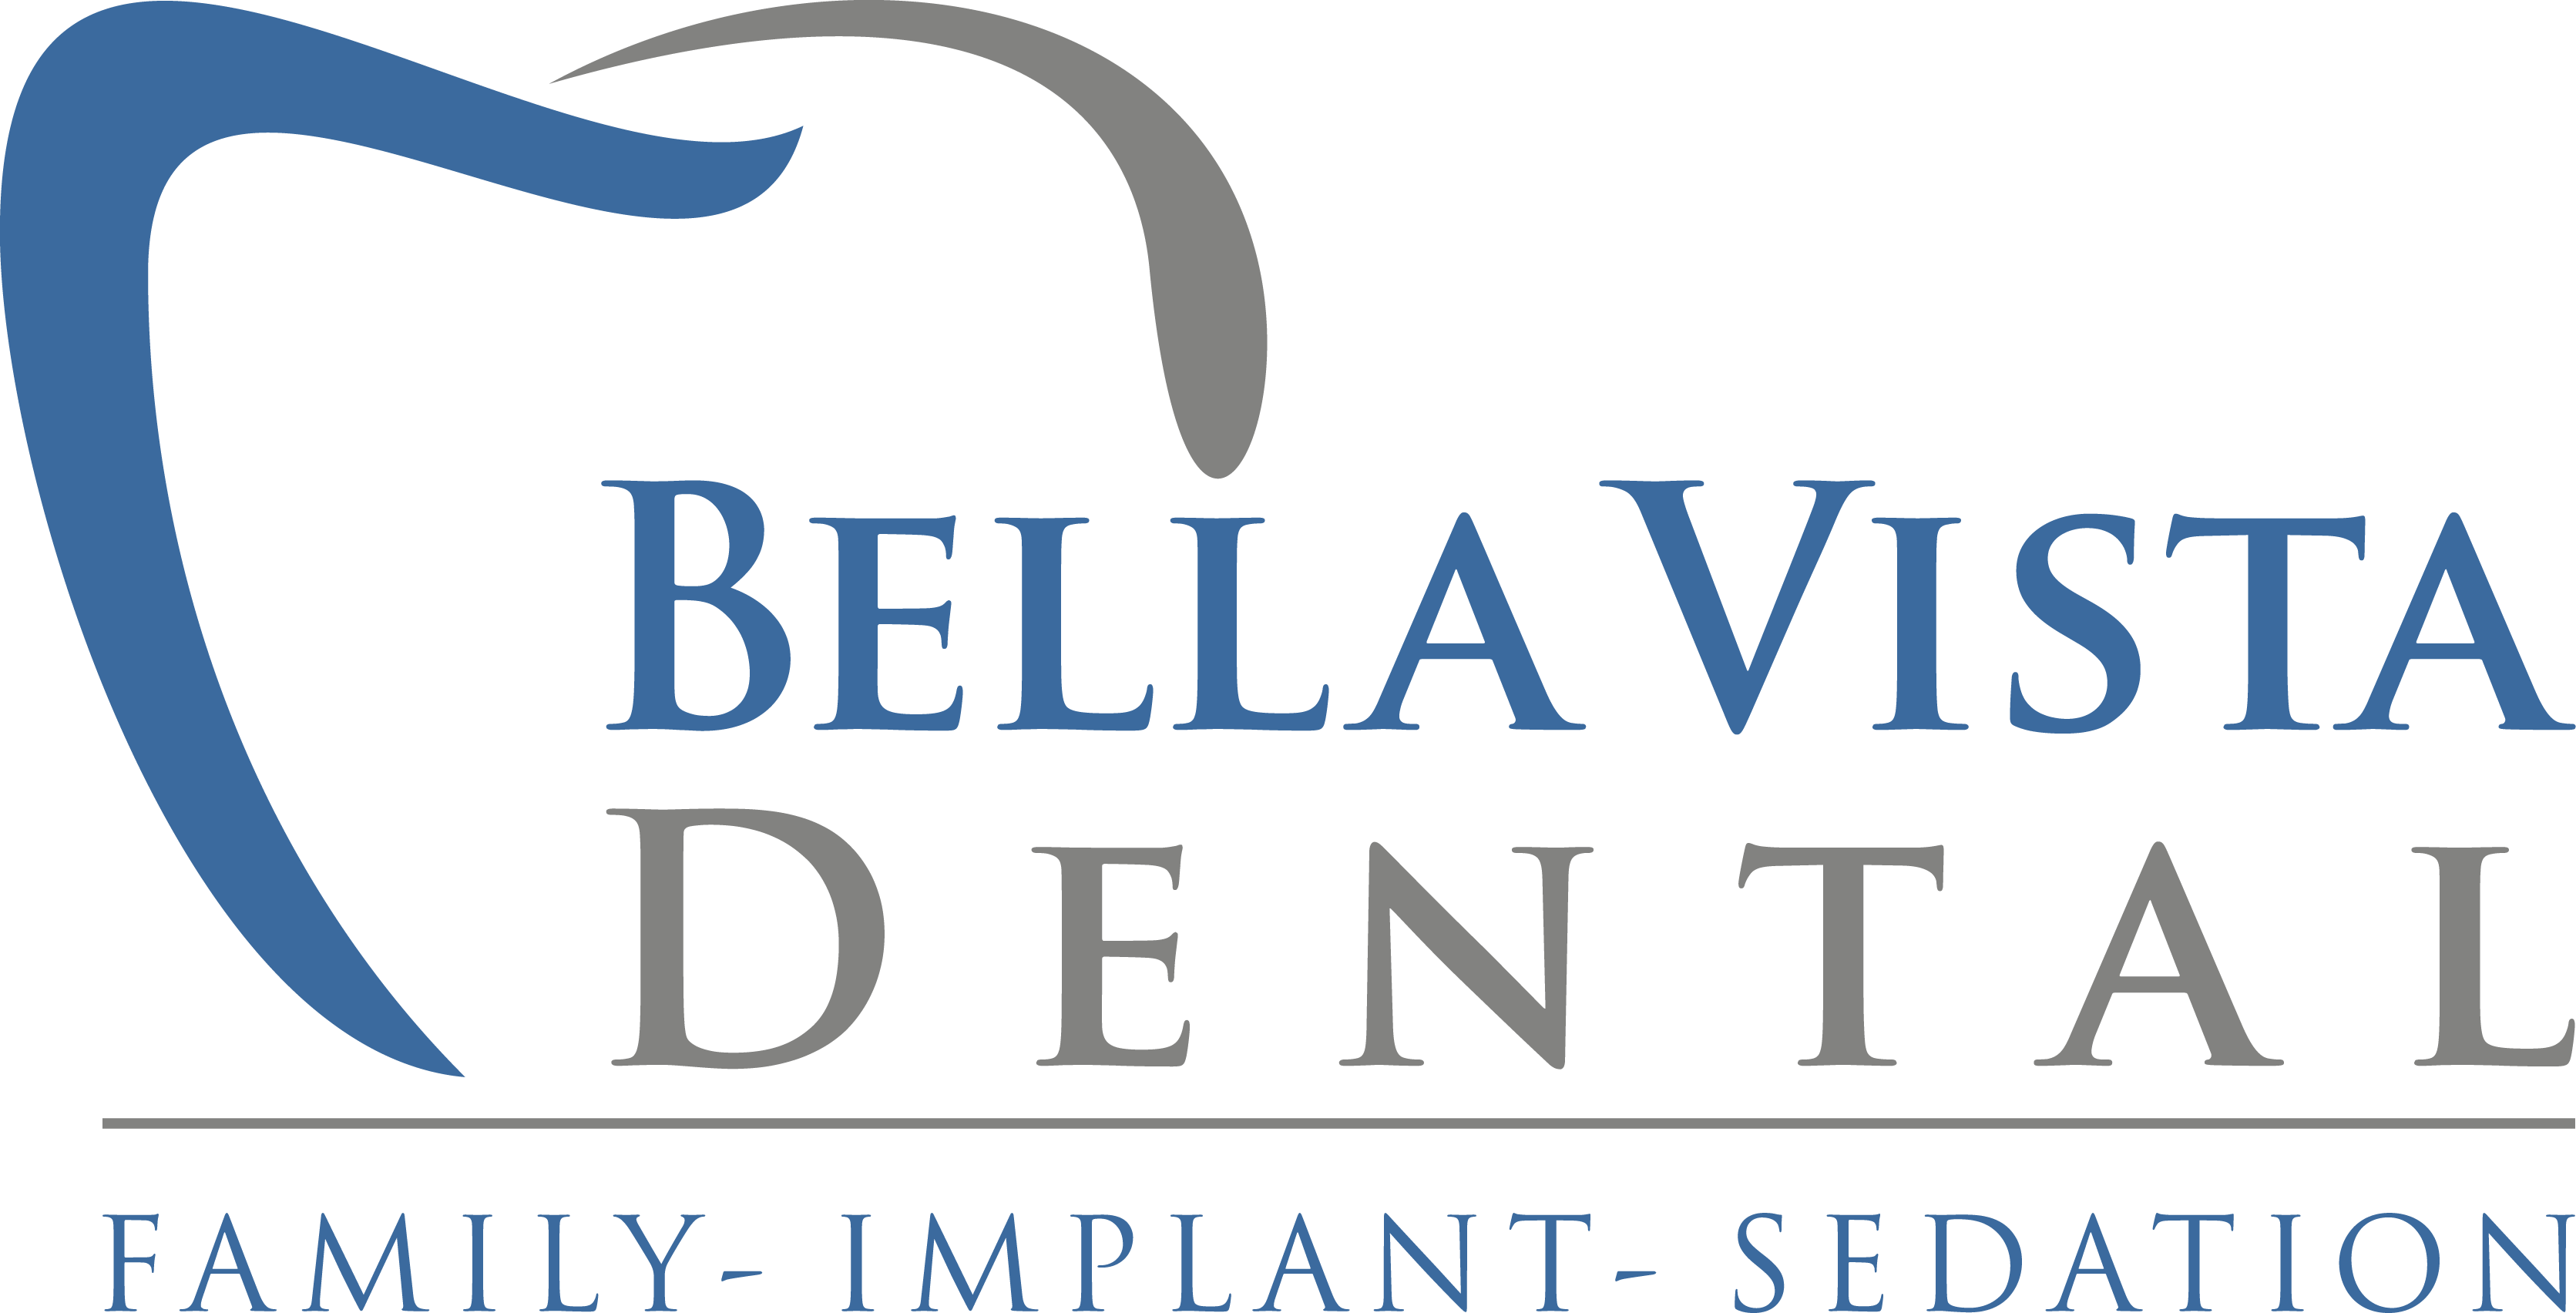 Bella Vista Dental, Greenville SC